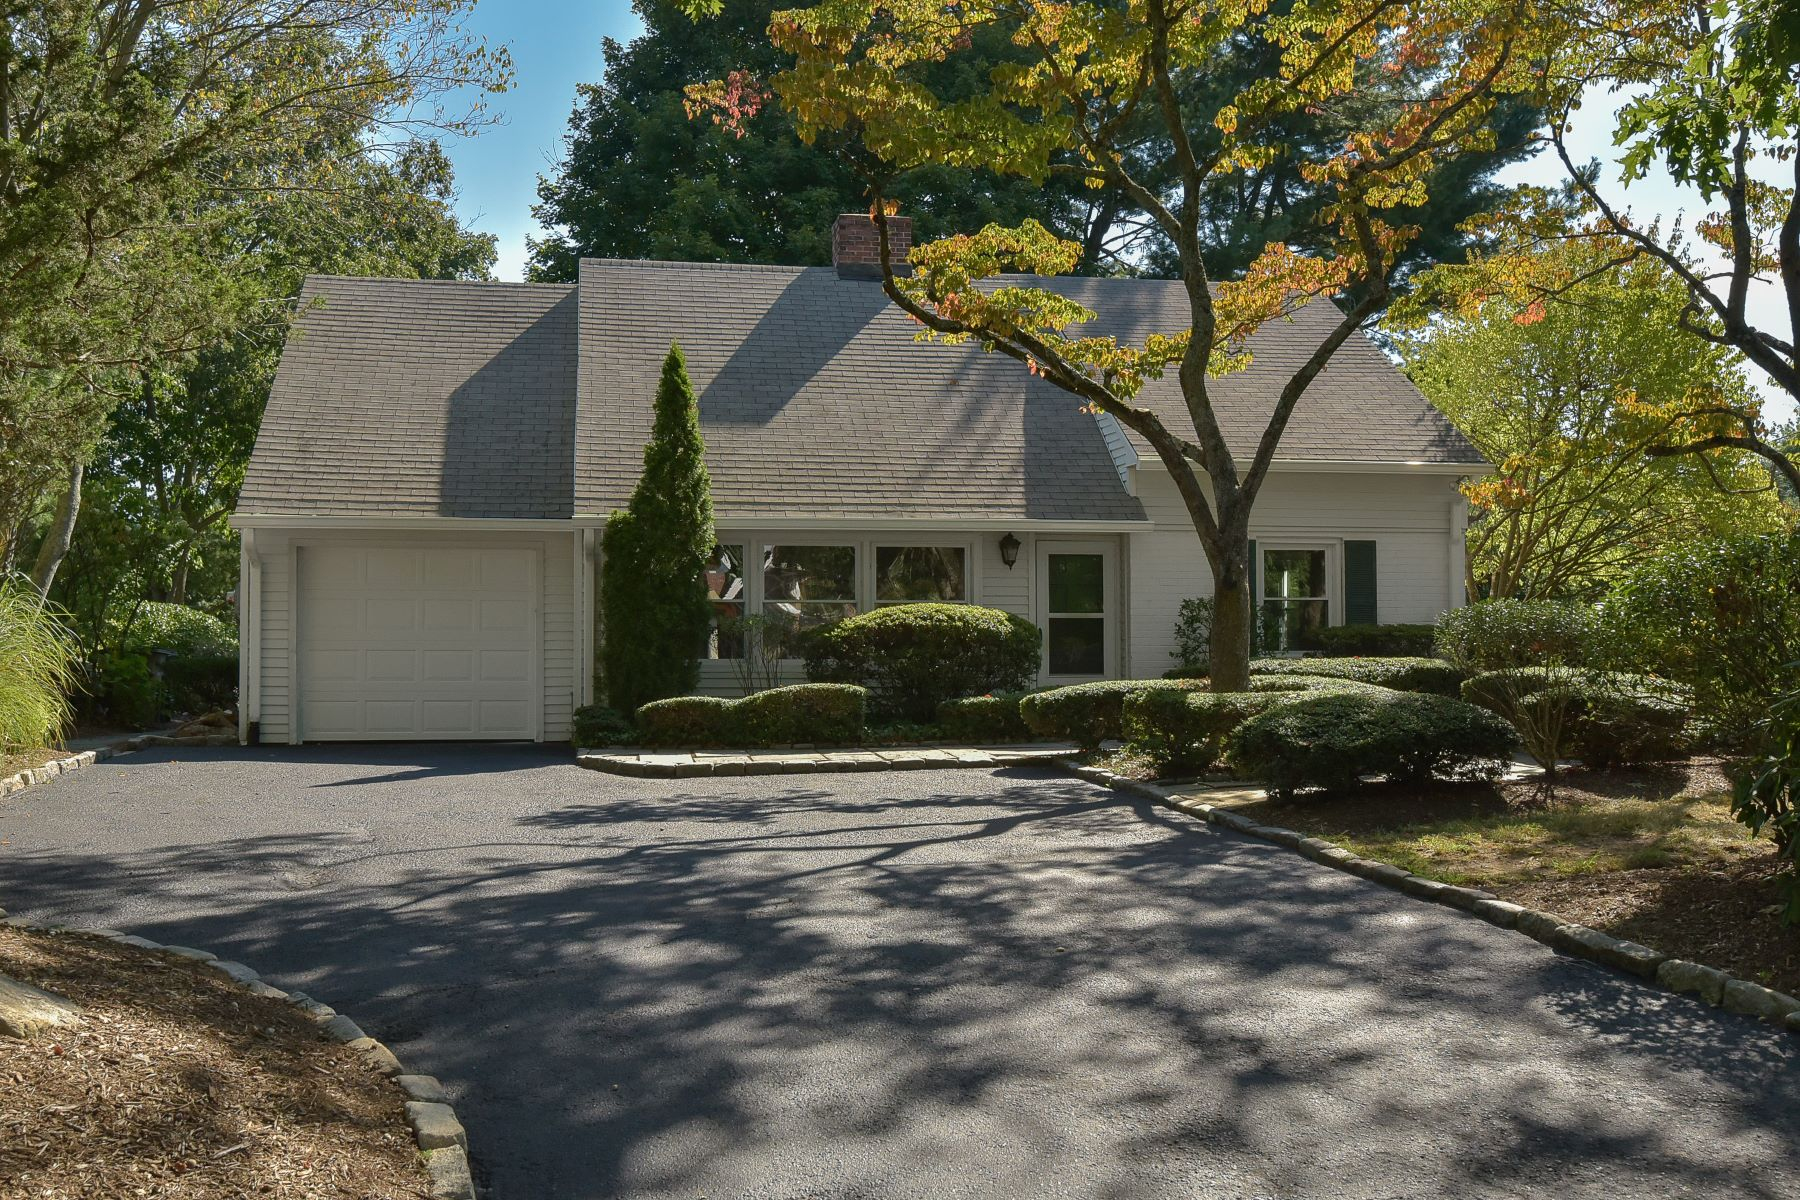 Single Family Home for Rent at Westover Rental 1329 Stillwater Road Stamford, Connecticut, 06902 United States